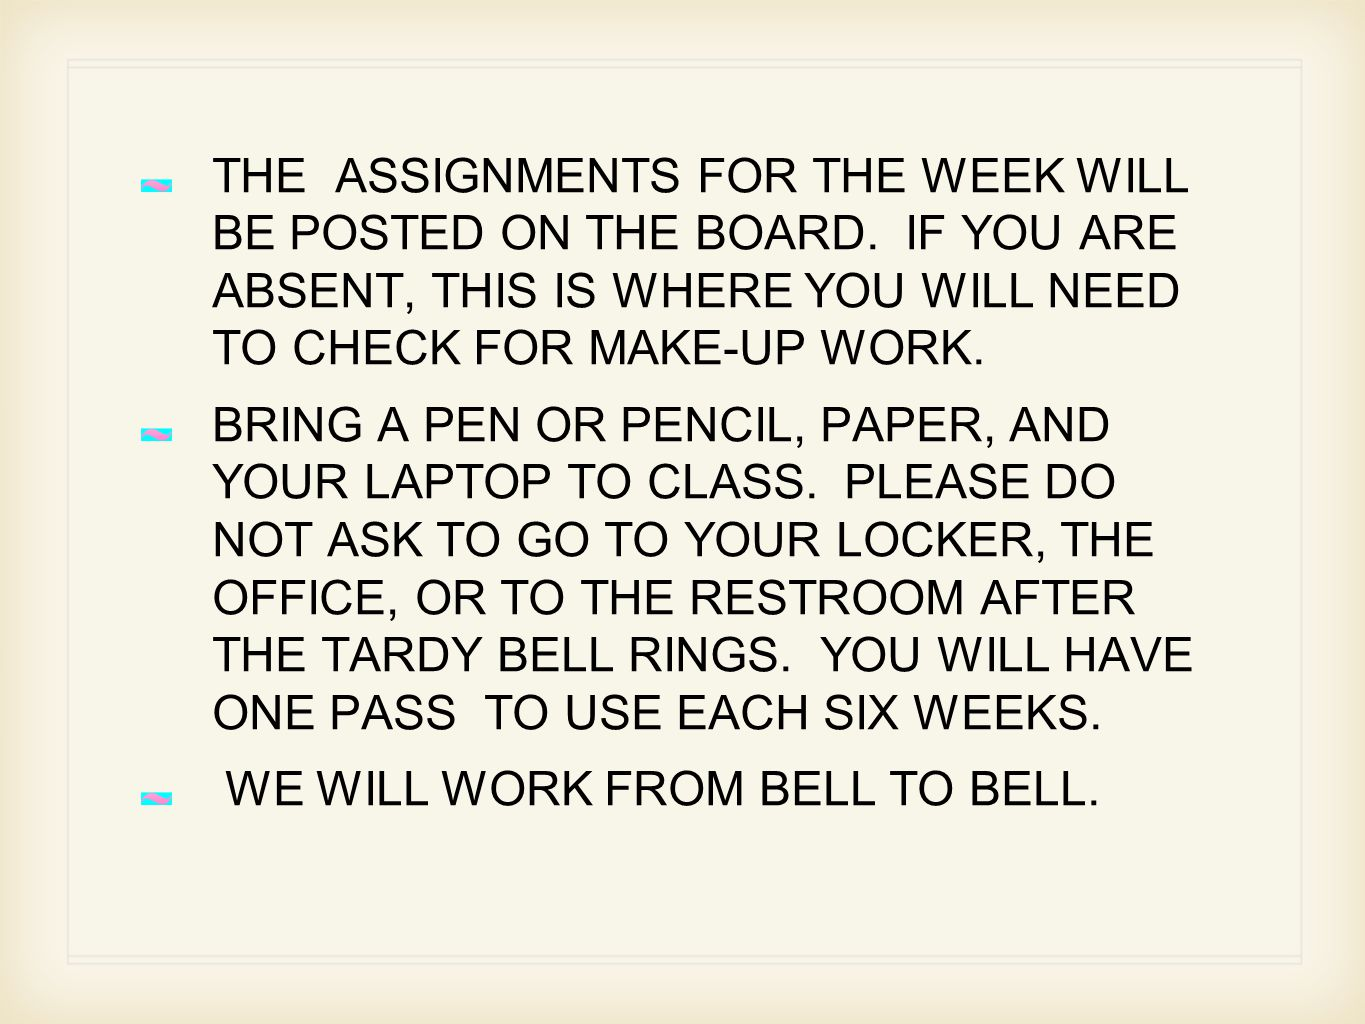 THE ASSIGNMENTS FOR THE WEEK WILL BE POSTED ON THE BOARD.